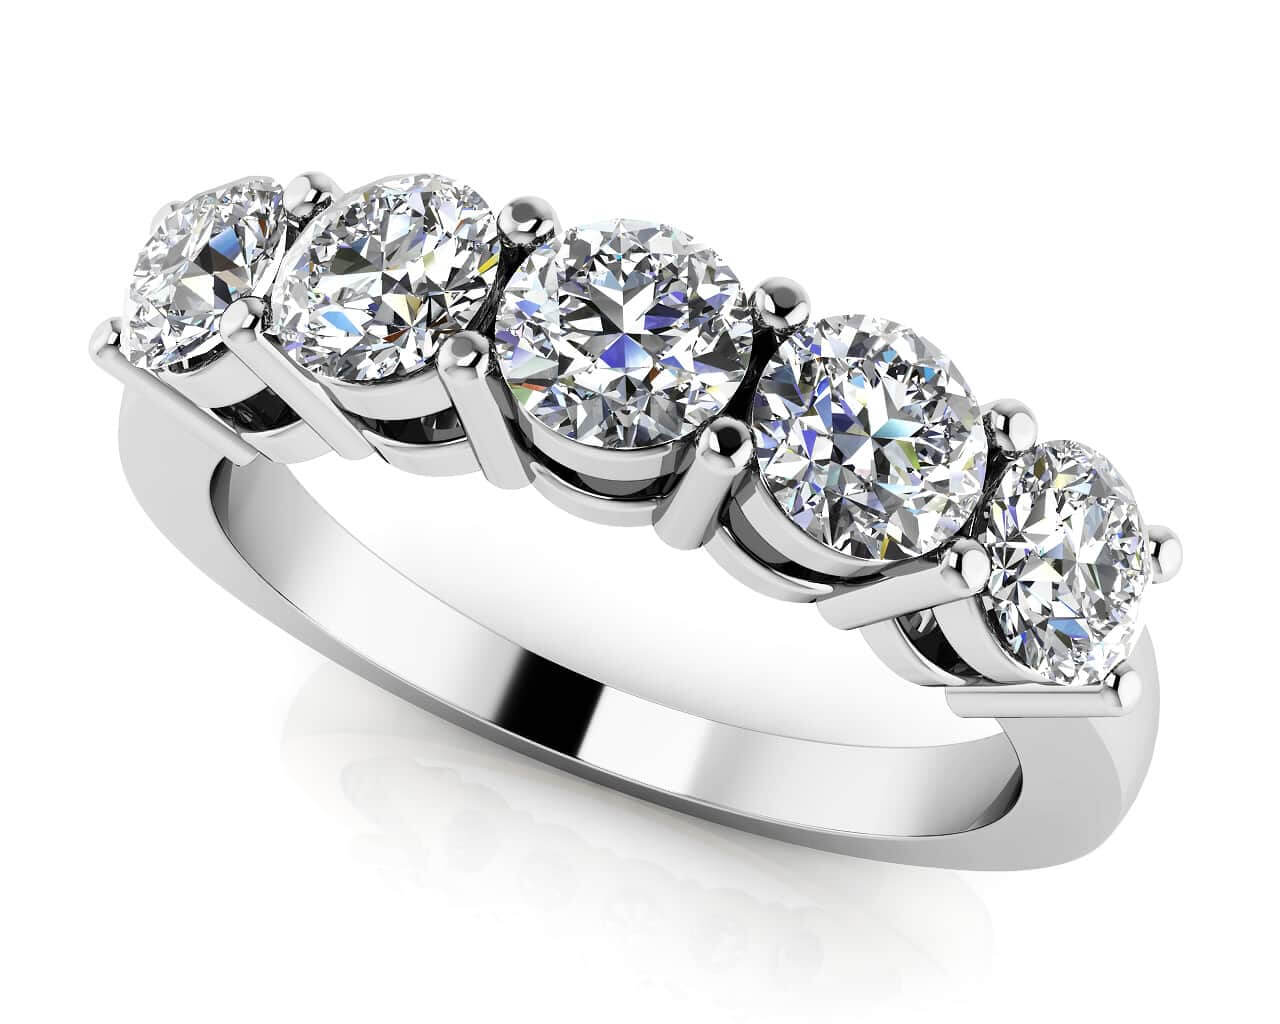 design ring online jewellery your dress best wedding own